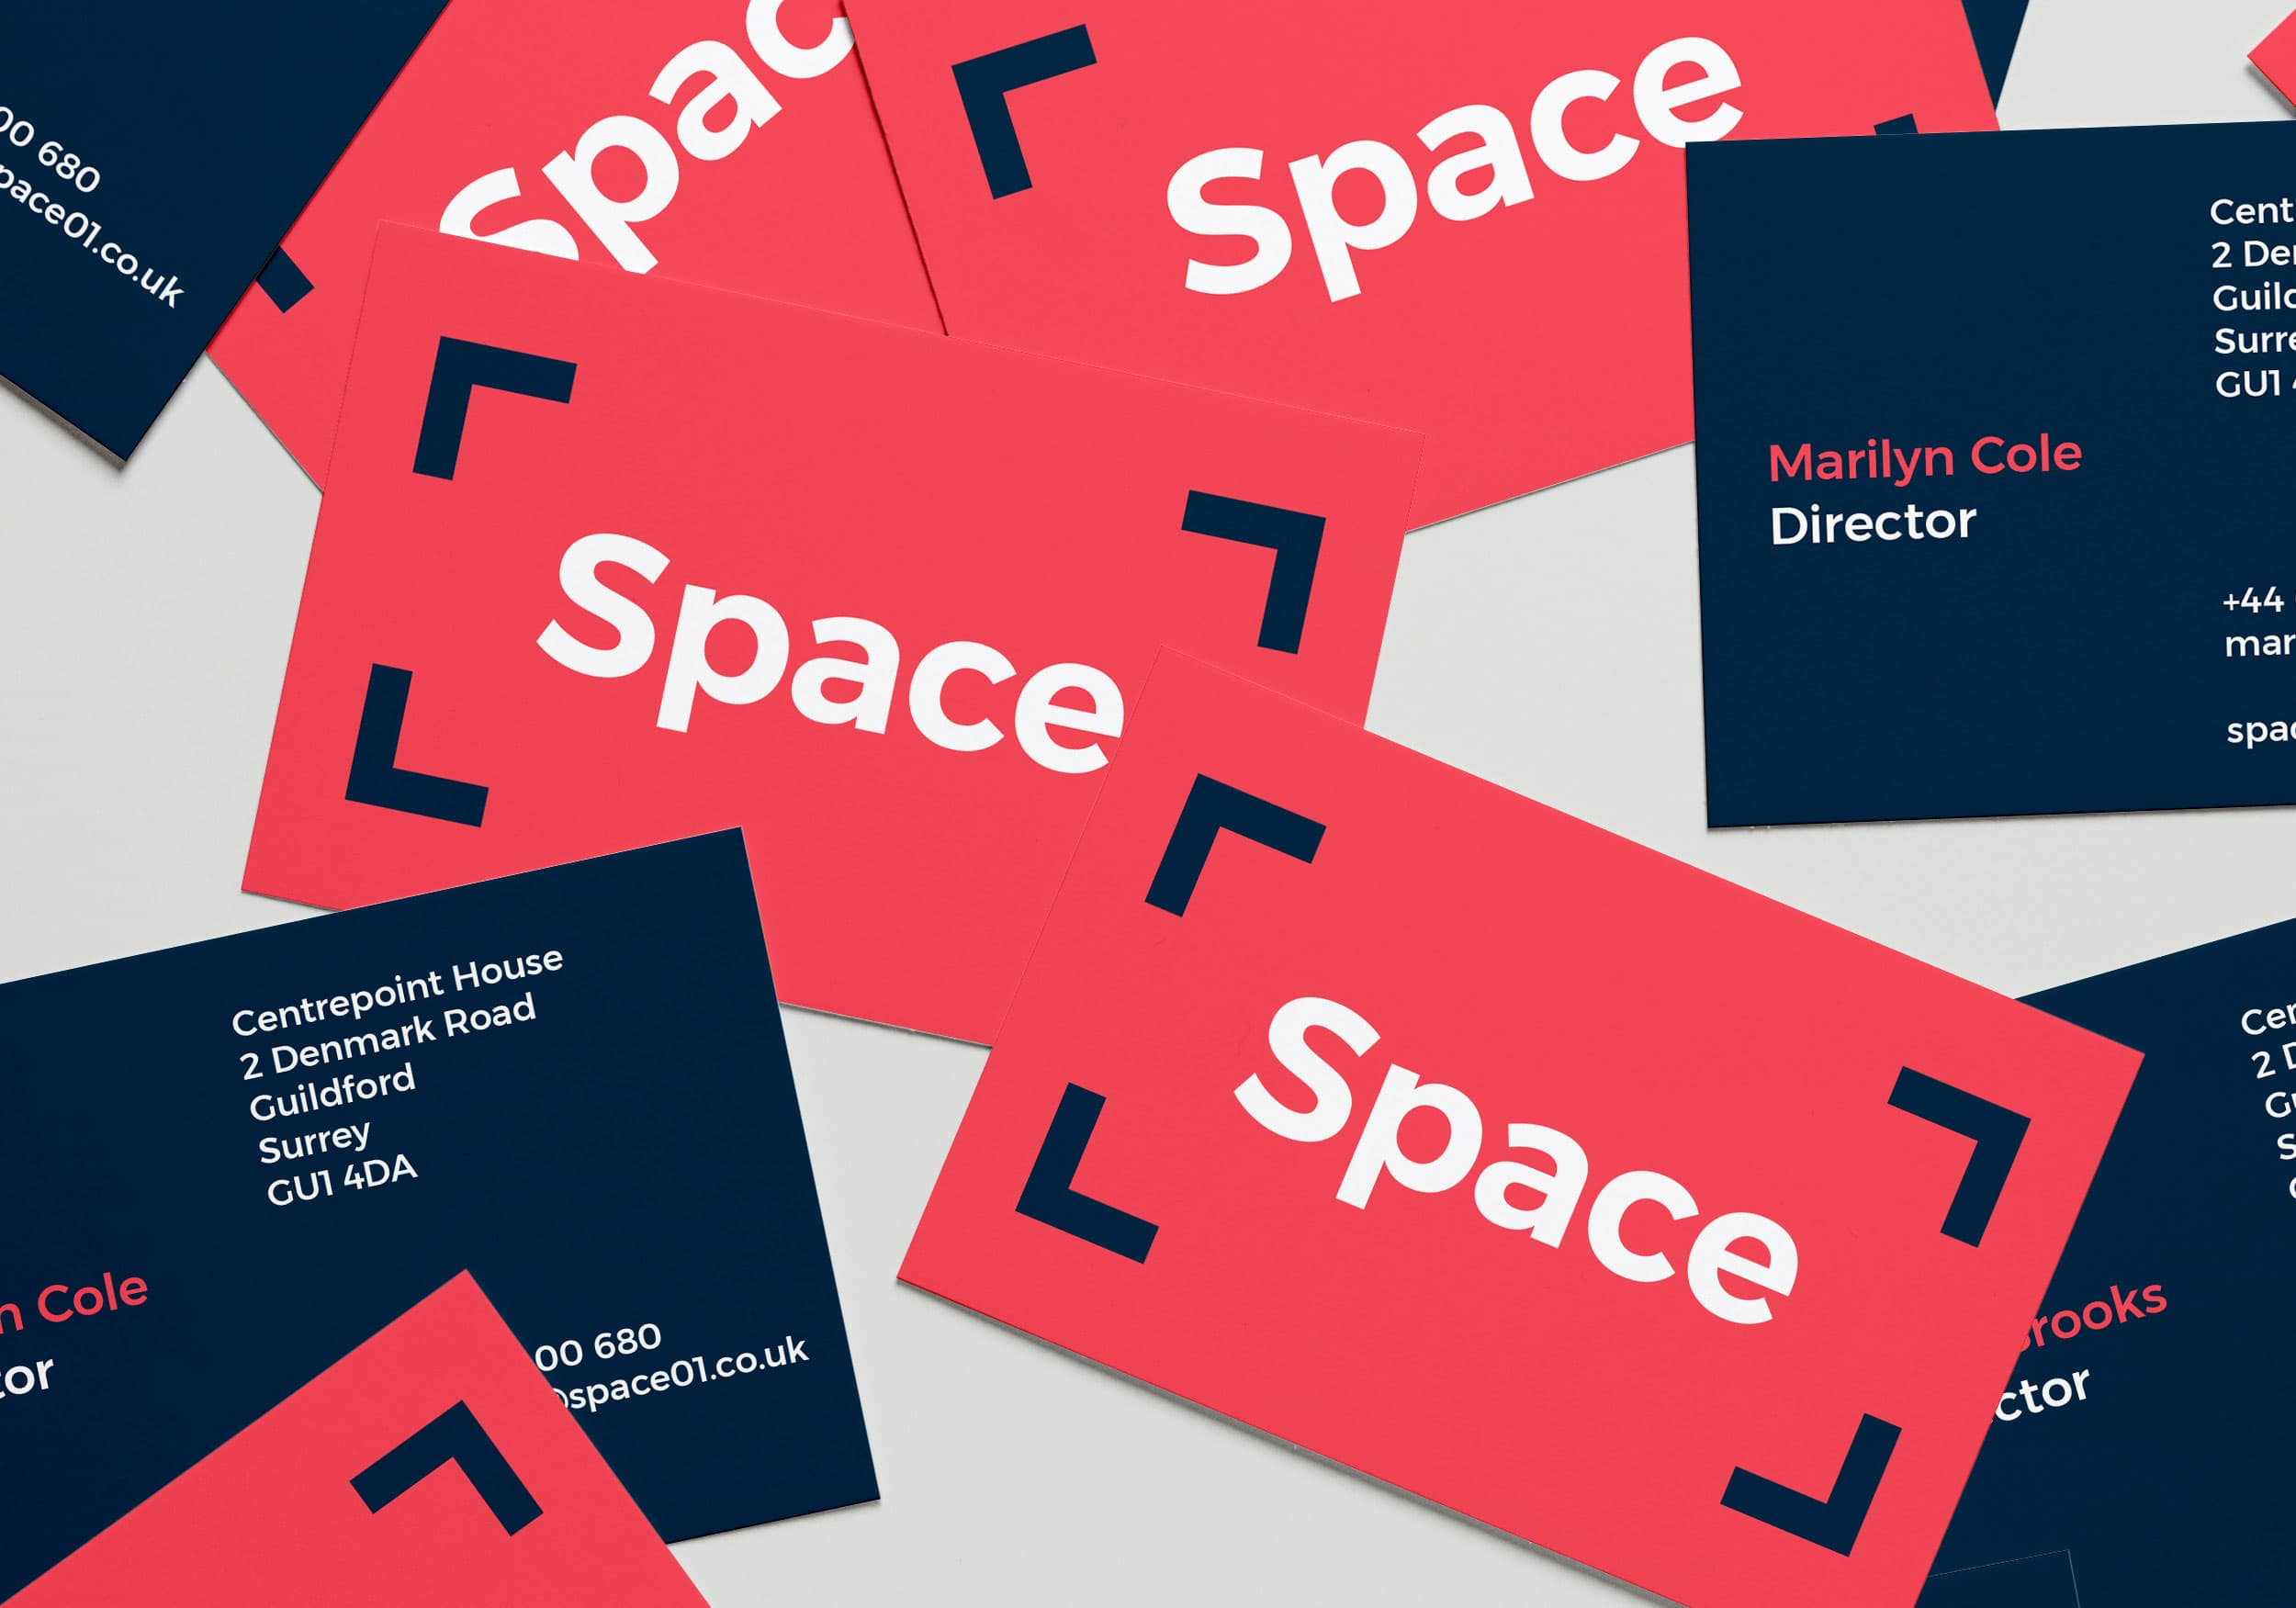 Space branding business cards